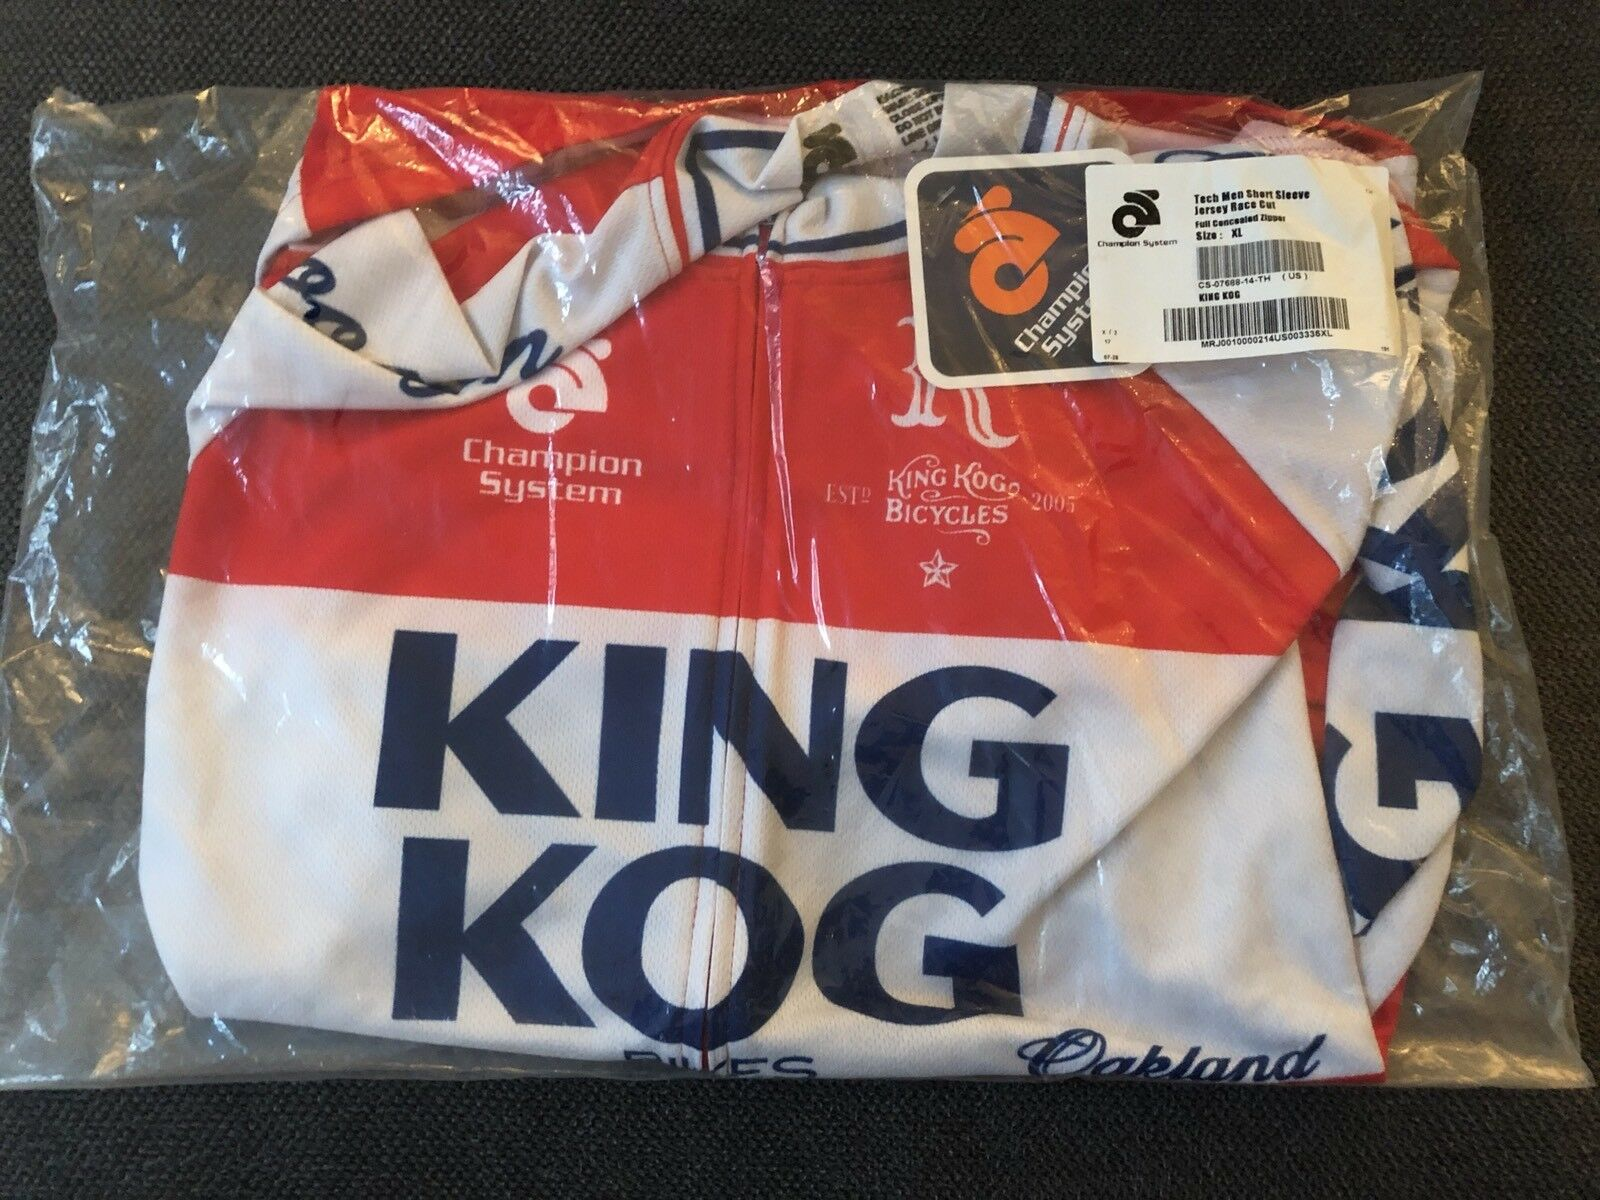 NEW KING KOG KING OF GEARS CYCLING JERSEY XL